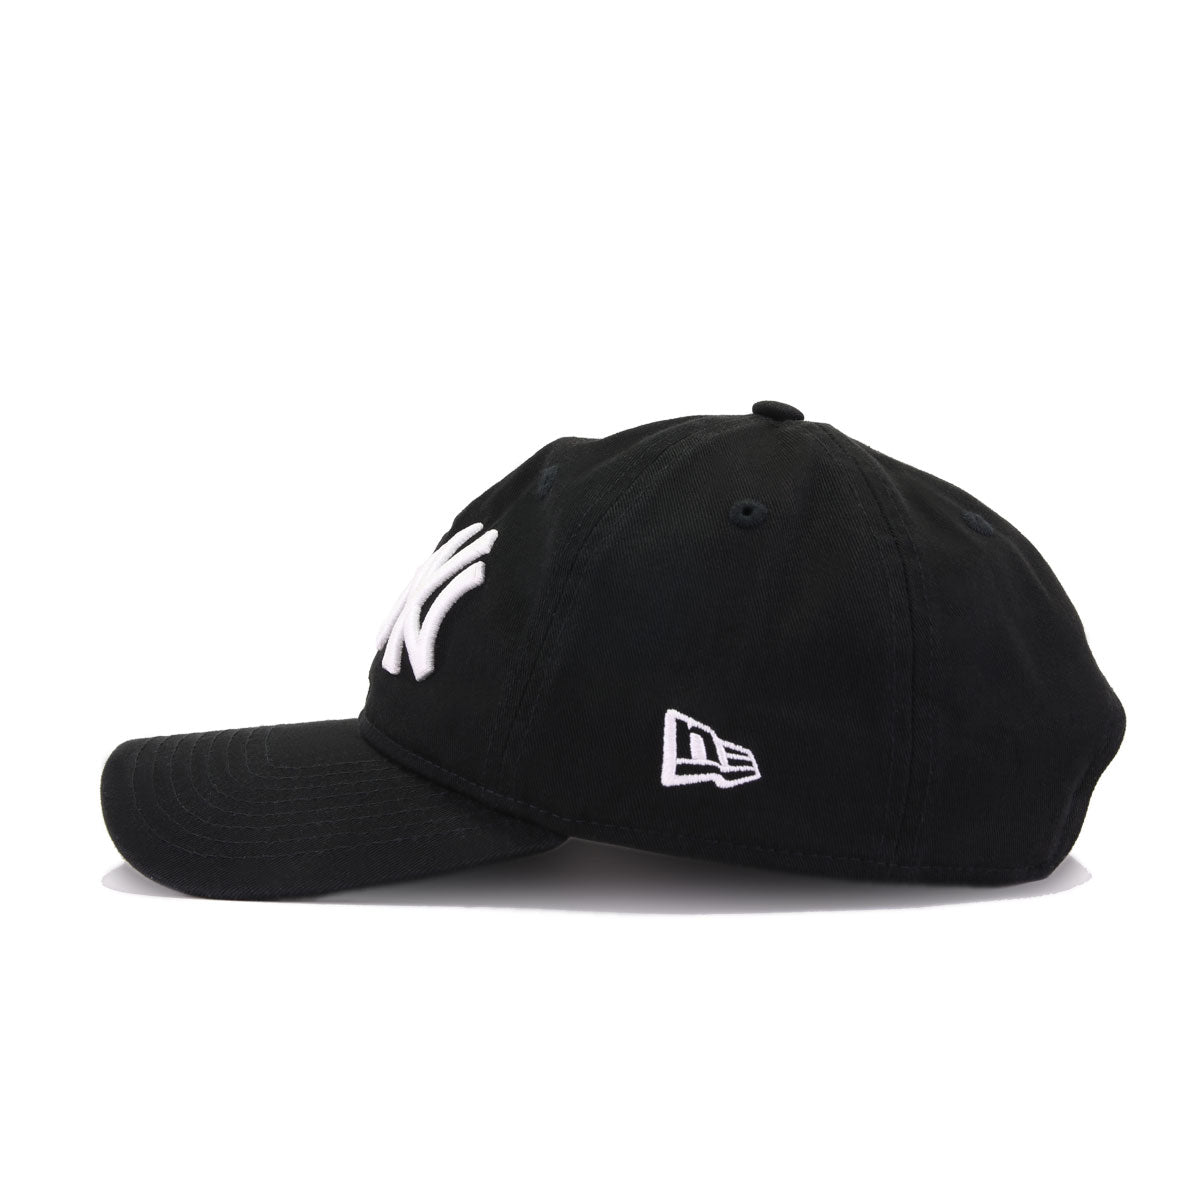 New York Yankees x New York Mets x Hat Heaven Black Subway Series New Era 9Twenty Dad Hat